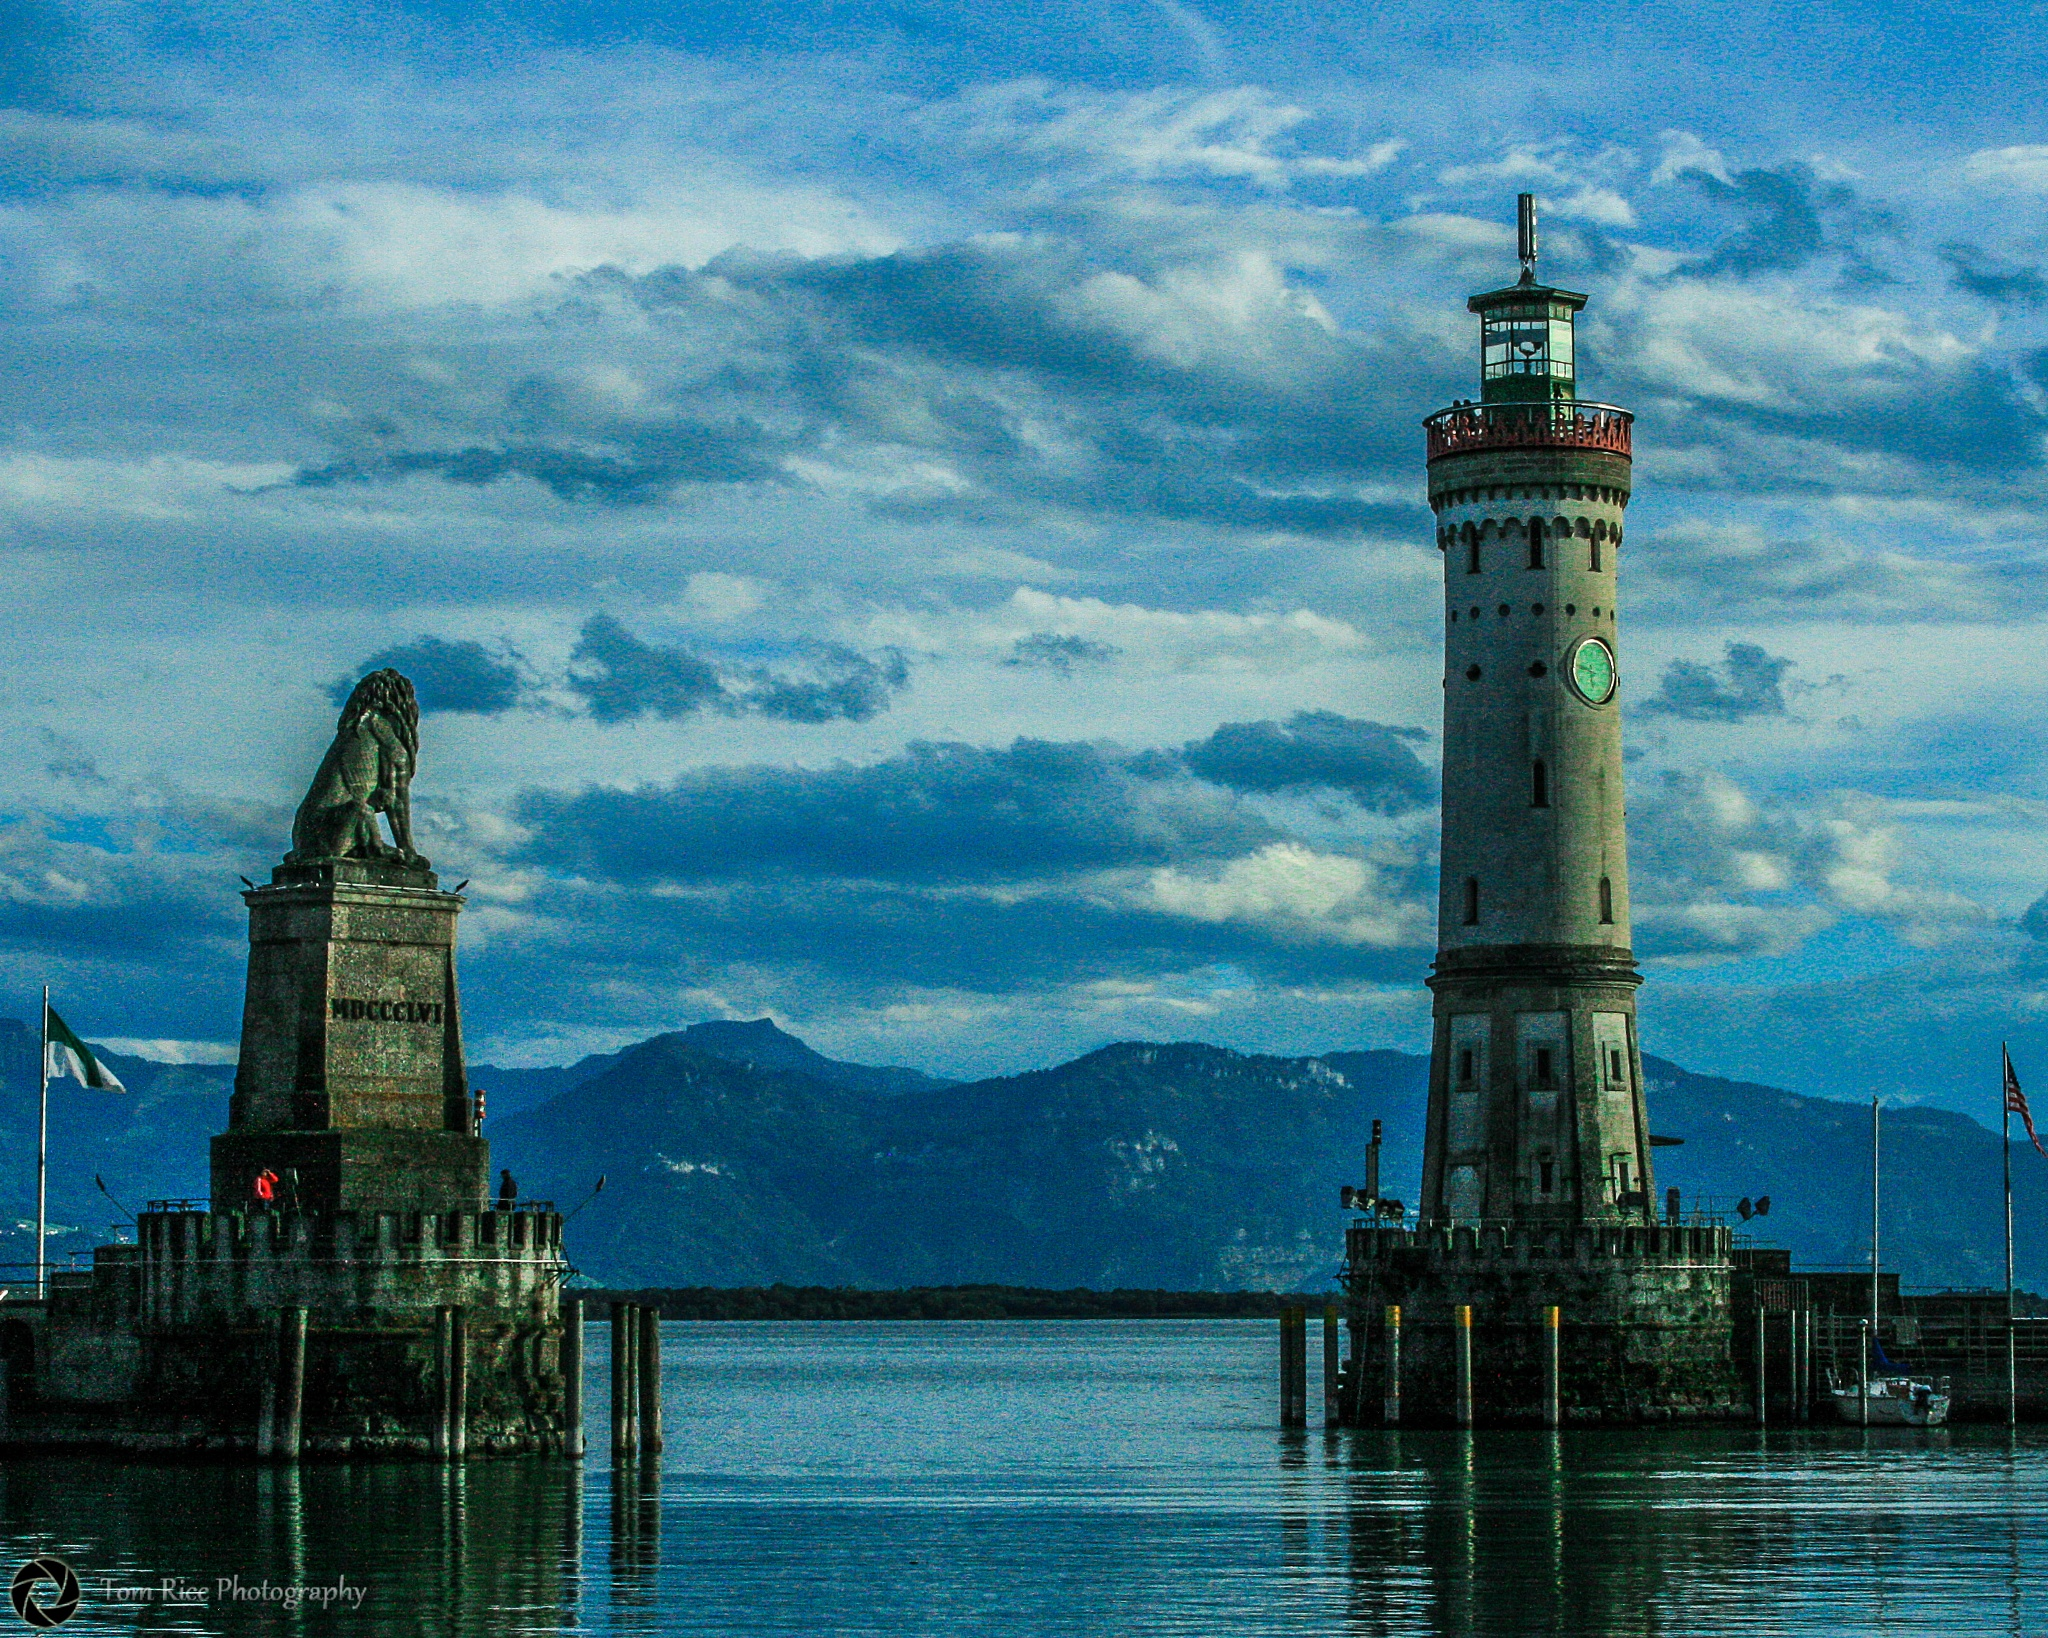 Lighthouse on Lake Constance by tommy.rice